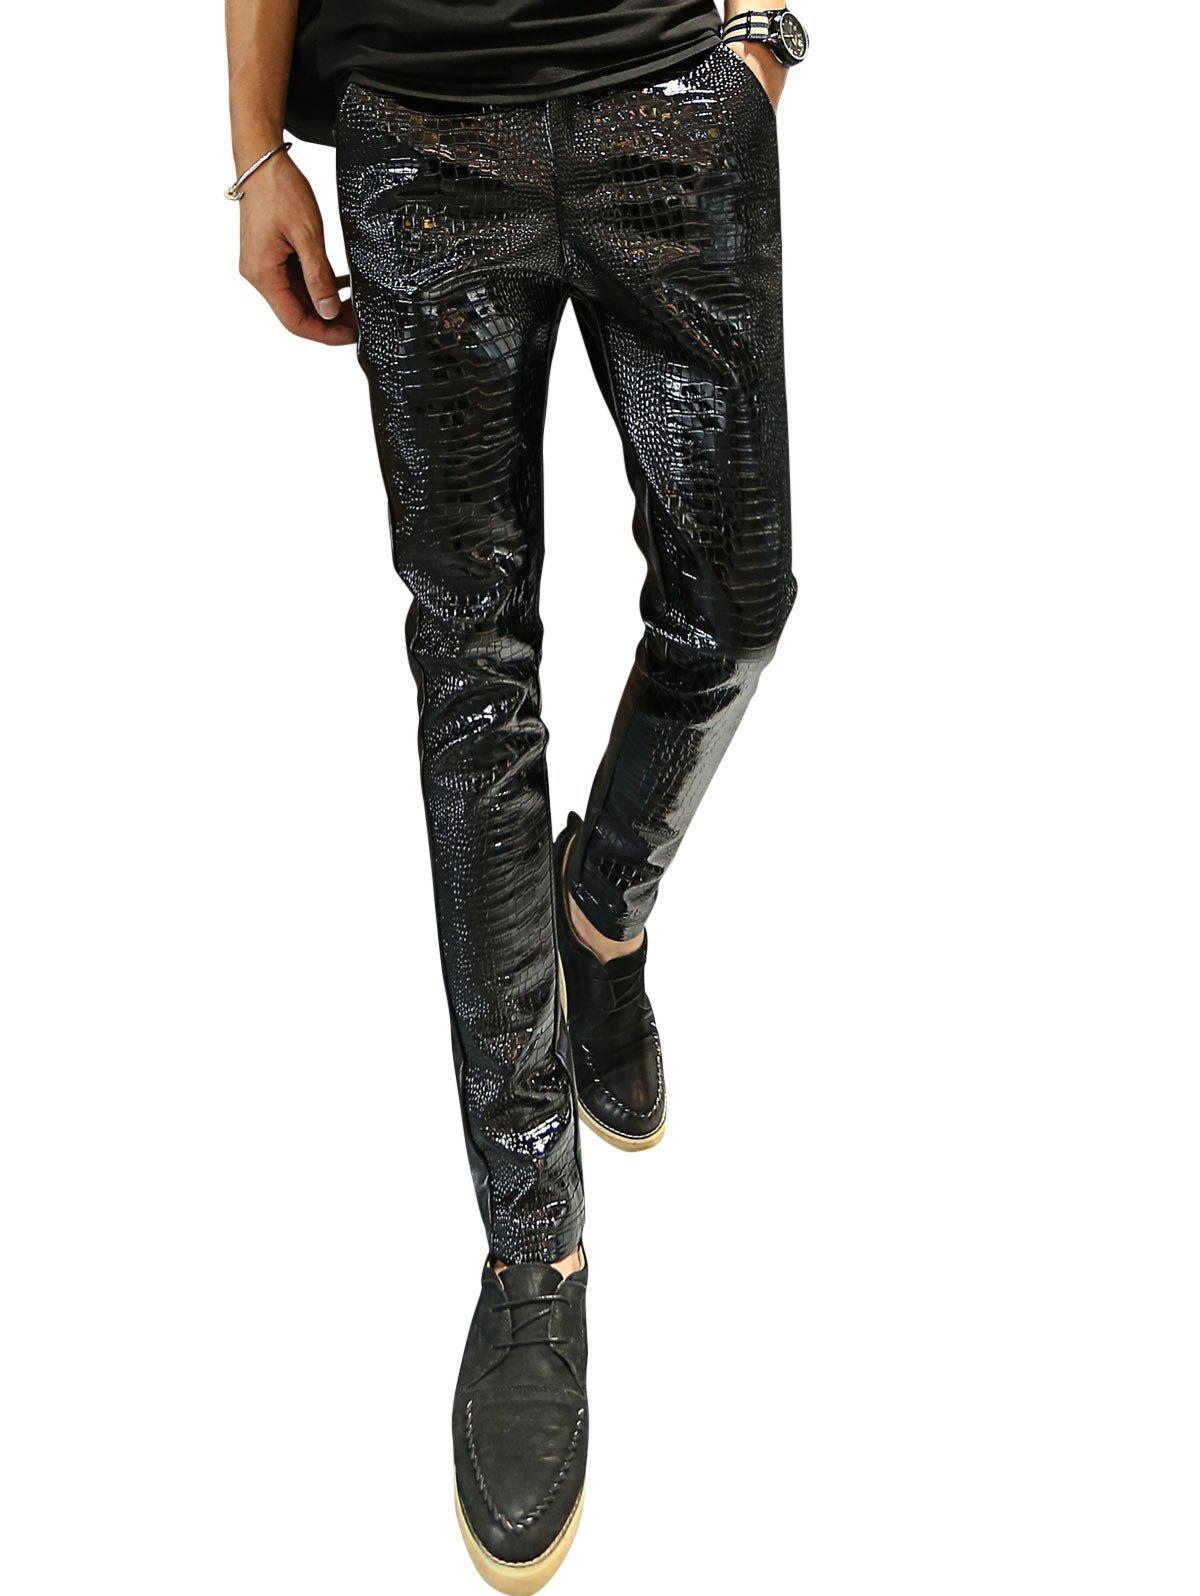 Crocodile Patten Skinny Faux Leather Pants - BLACK 35